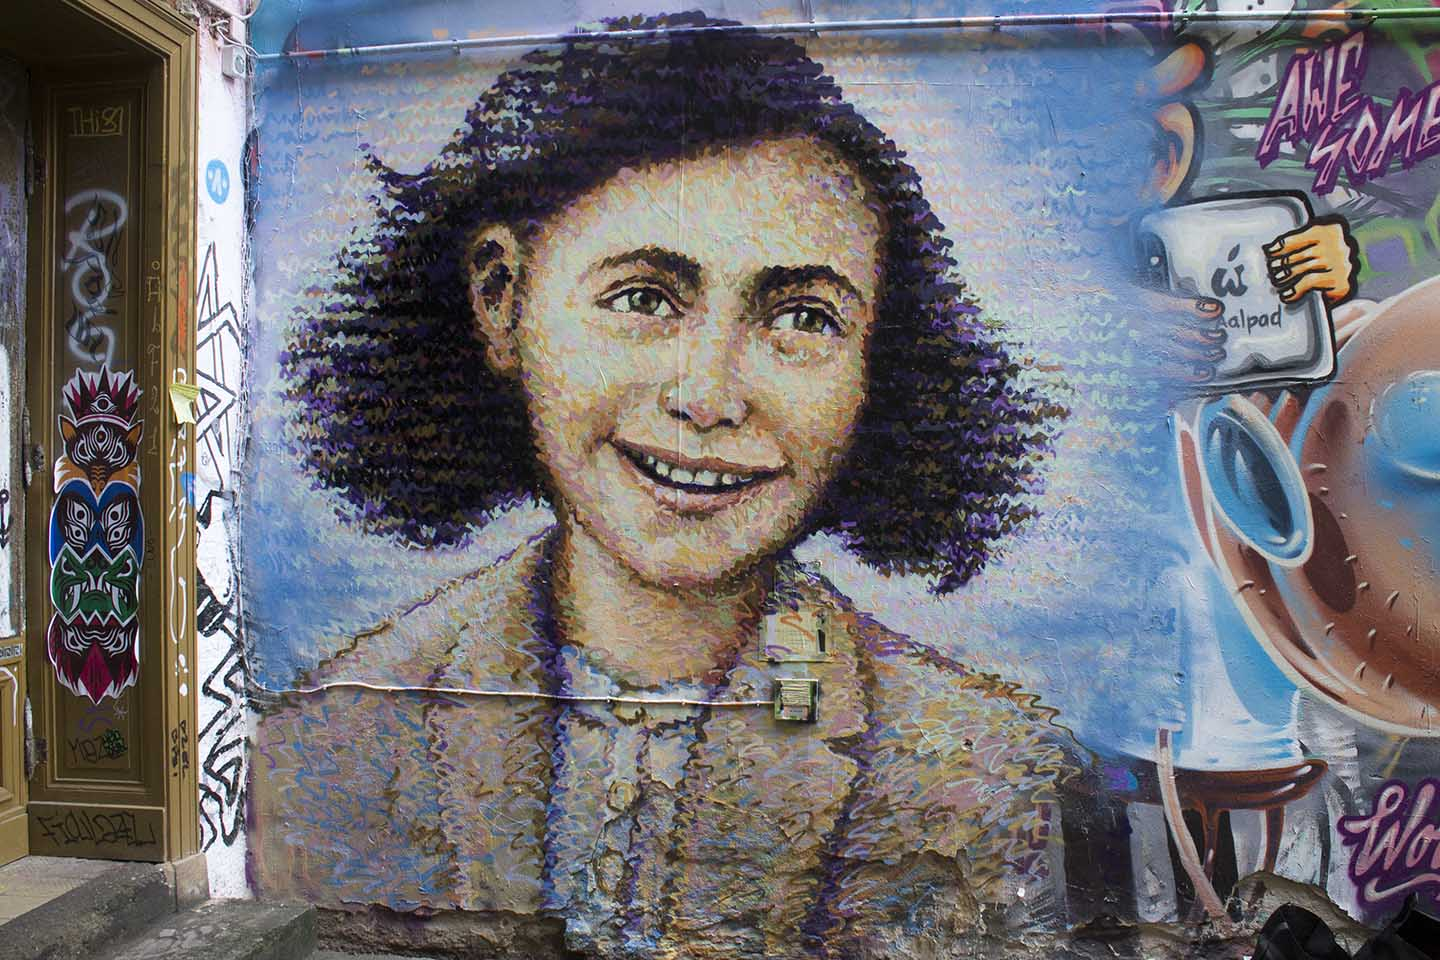 London based Street Artist Jimmy C. painted a mural of Anne Frank in Berlin